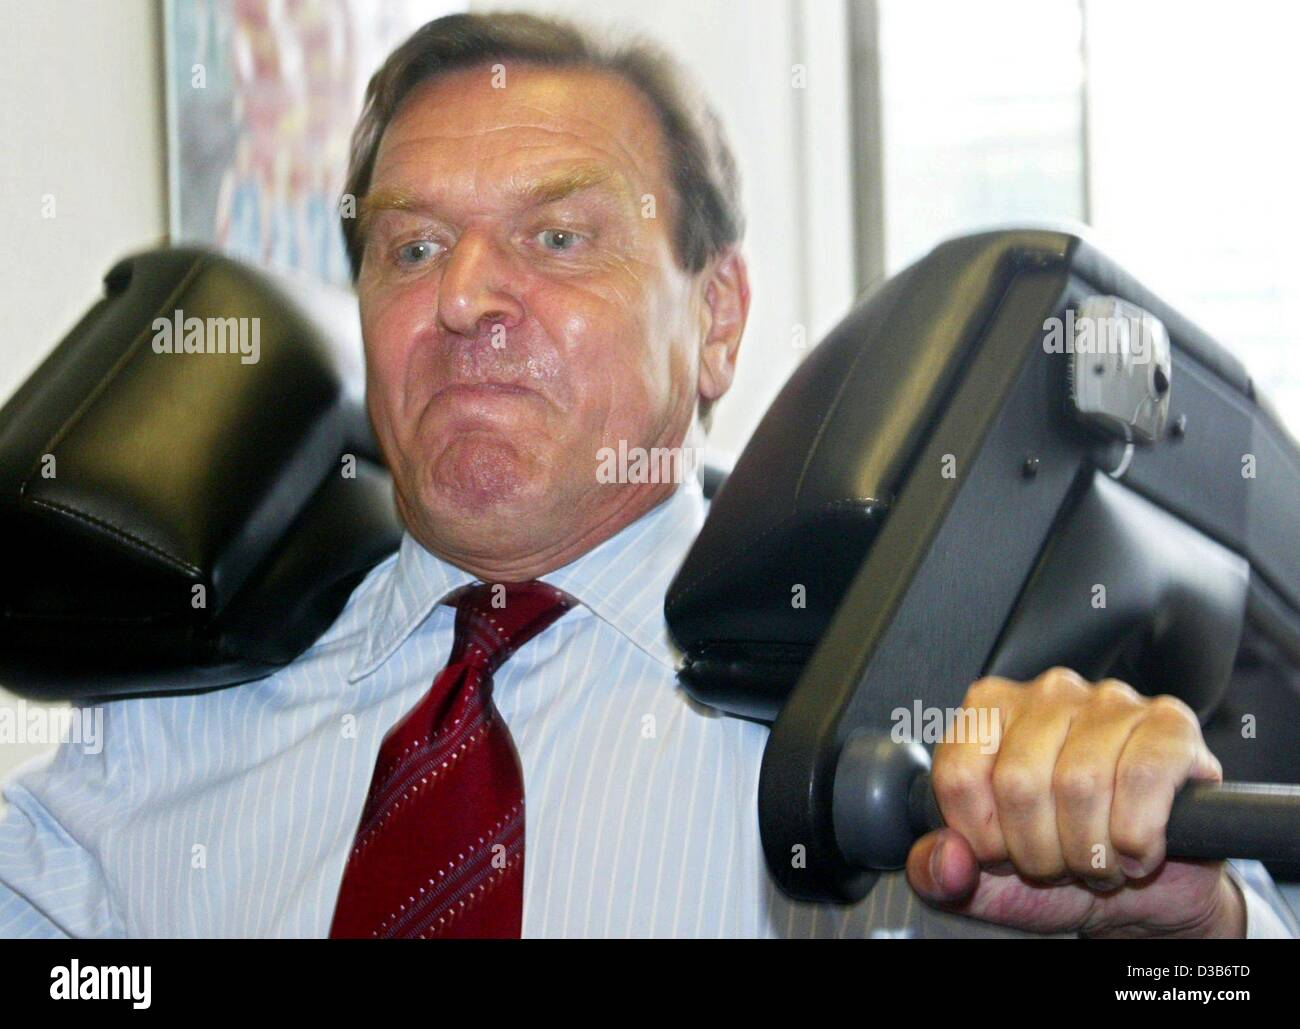 (dpa) - Chancellor Schroeder looks strained as he lifts weights during his visit to the olympic base in Berlin, - Stock Image